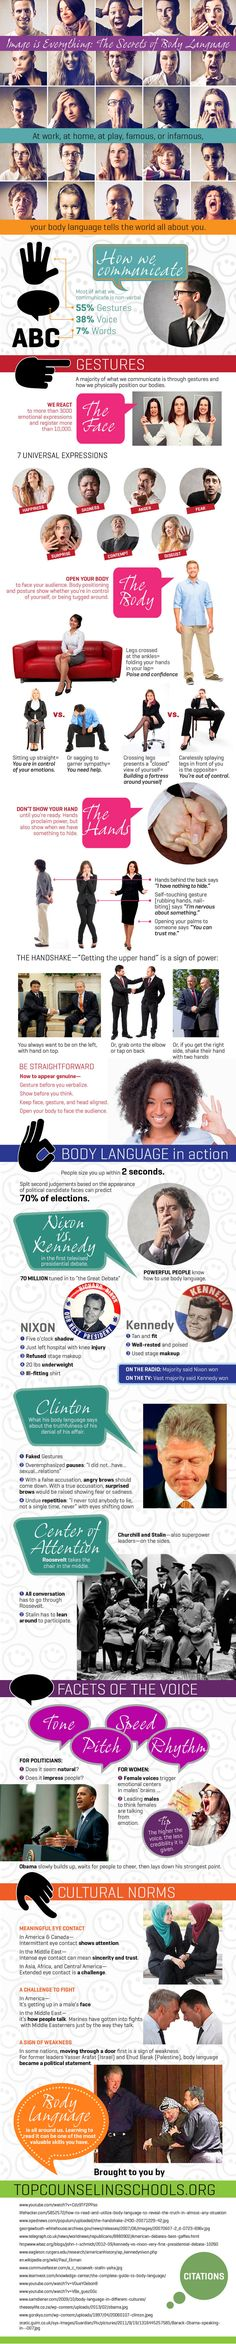 How to Read & Understand Body Language